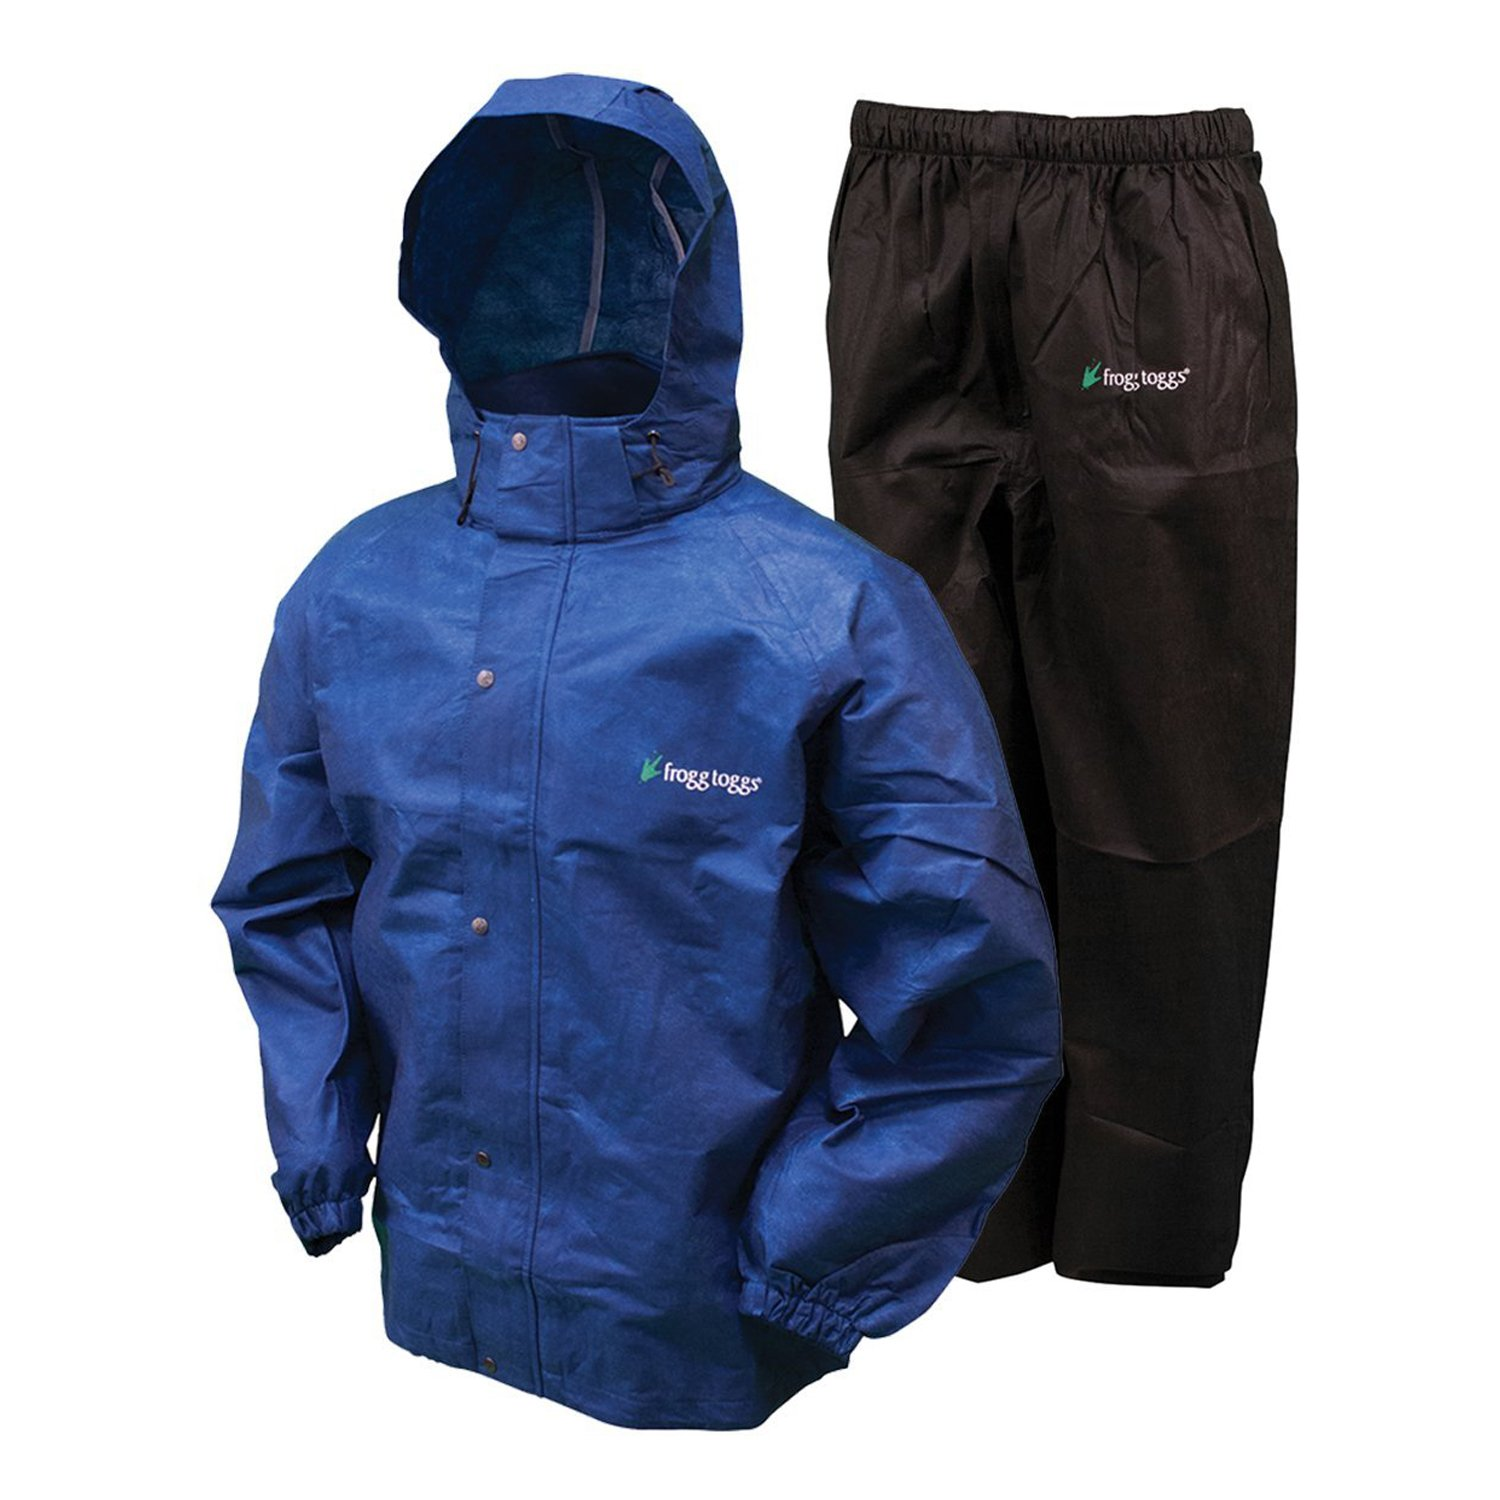 Frogg Toggs All Sport Rain Suit, Royal Blue Jacket/Black Pants, Size Small